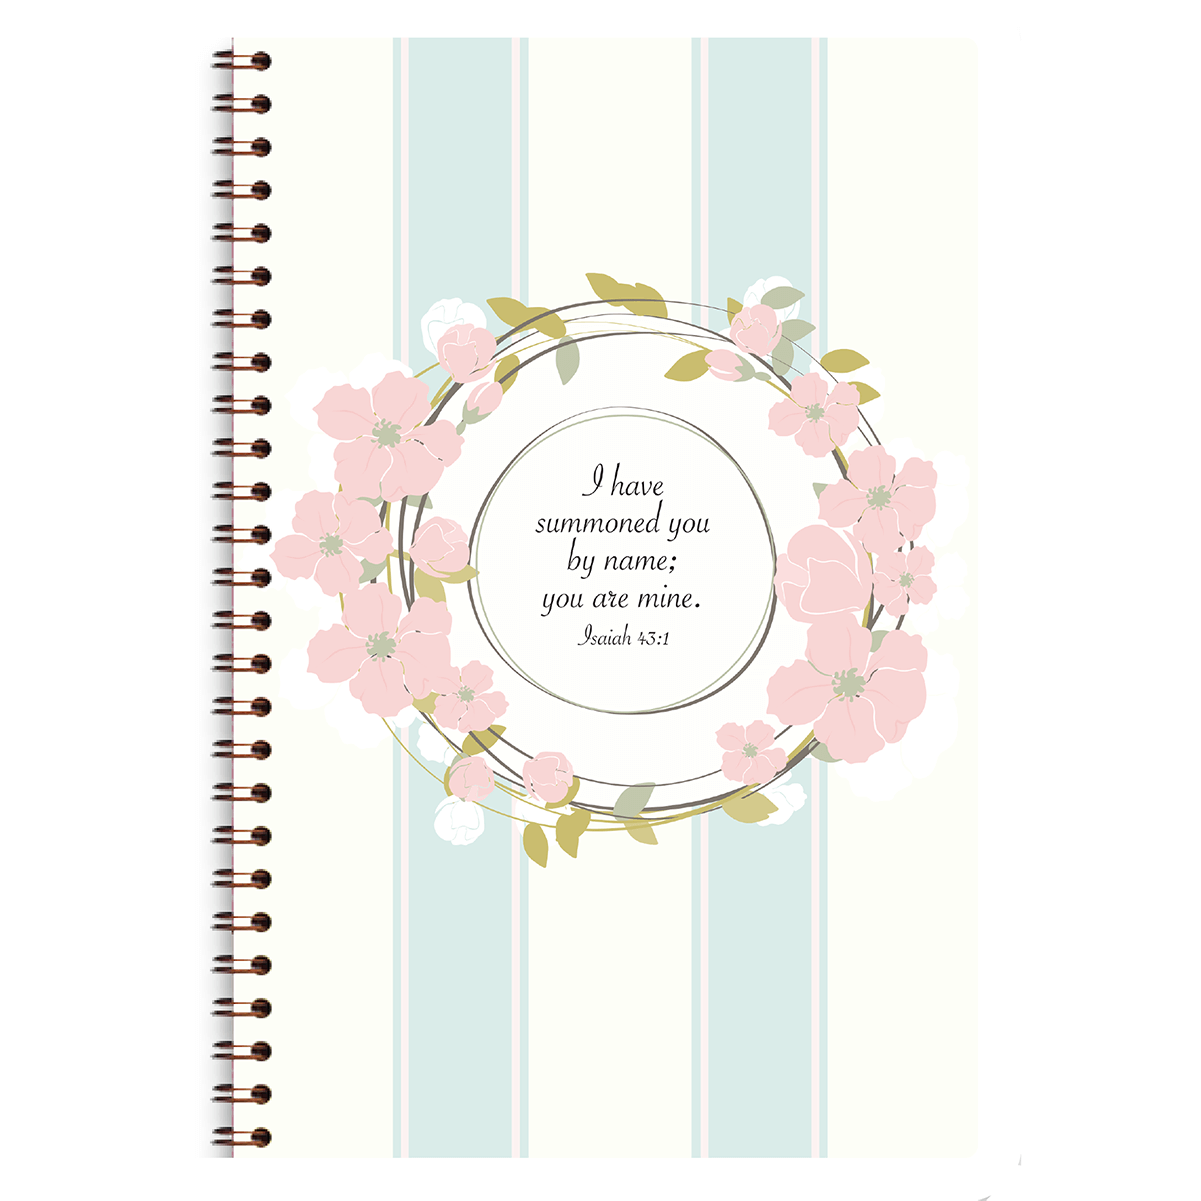 Floral Wreath Journal Paper Sunday